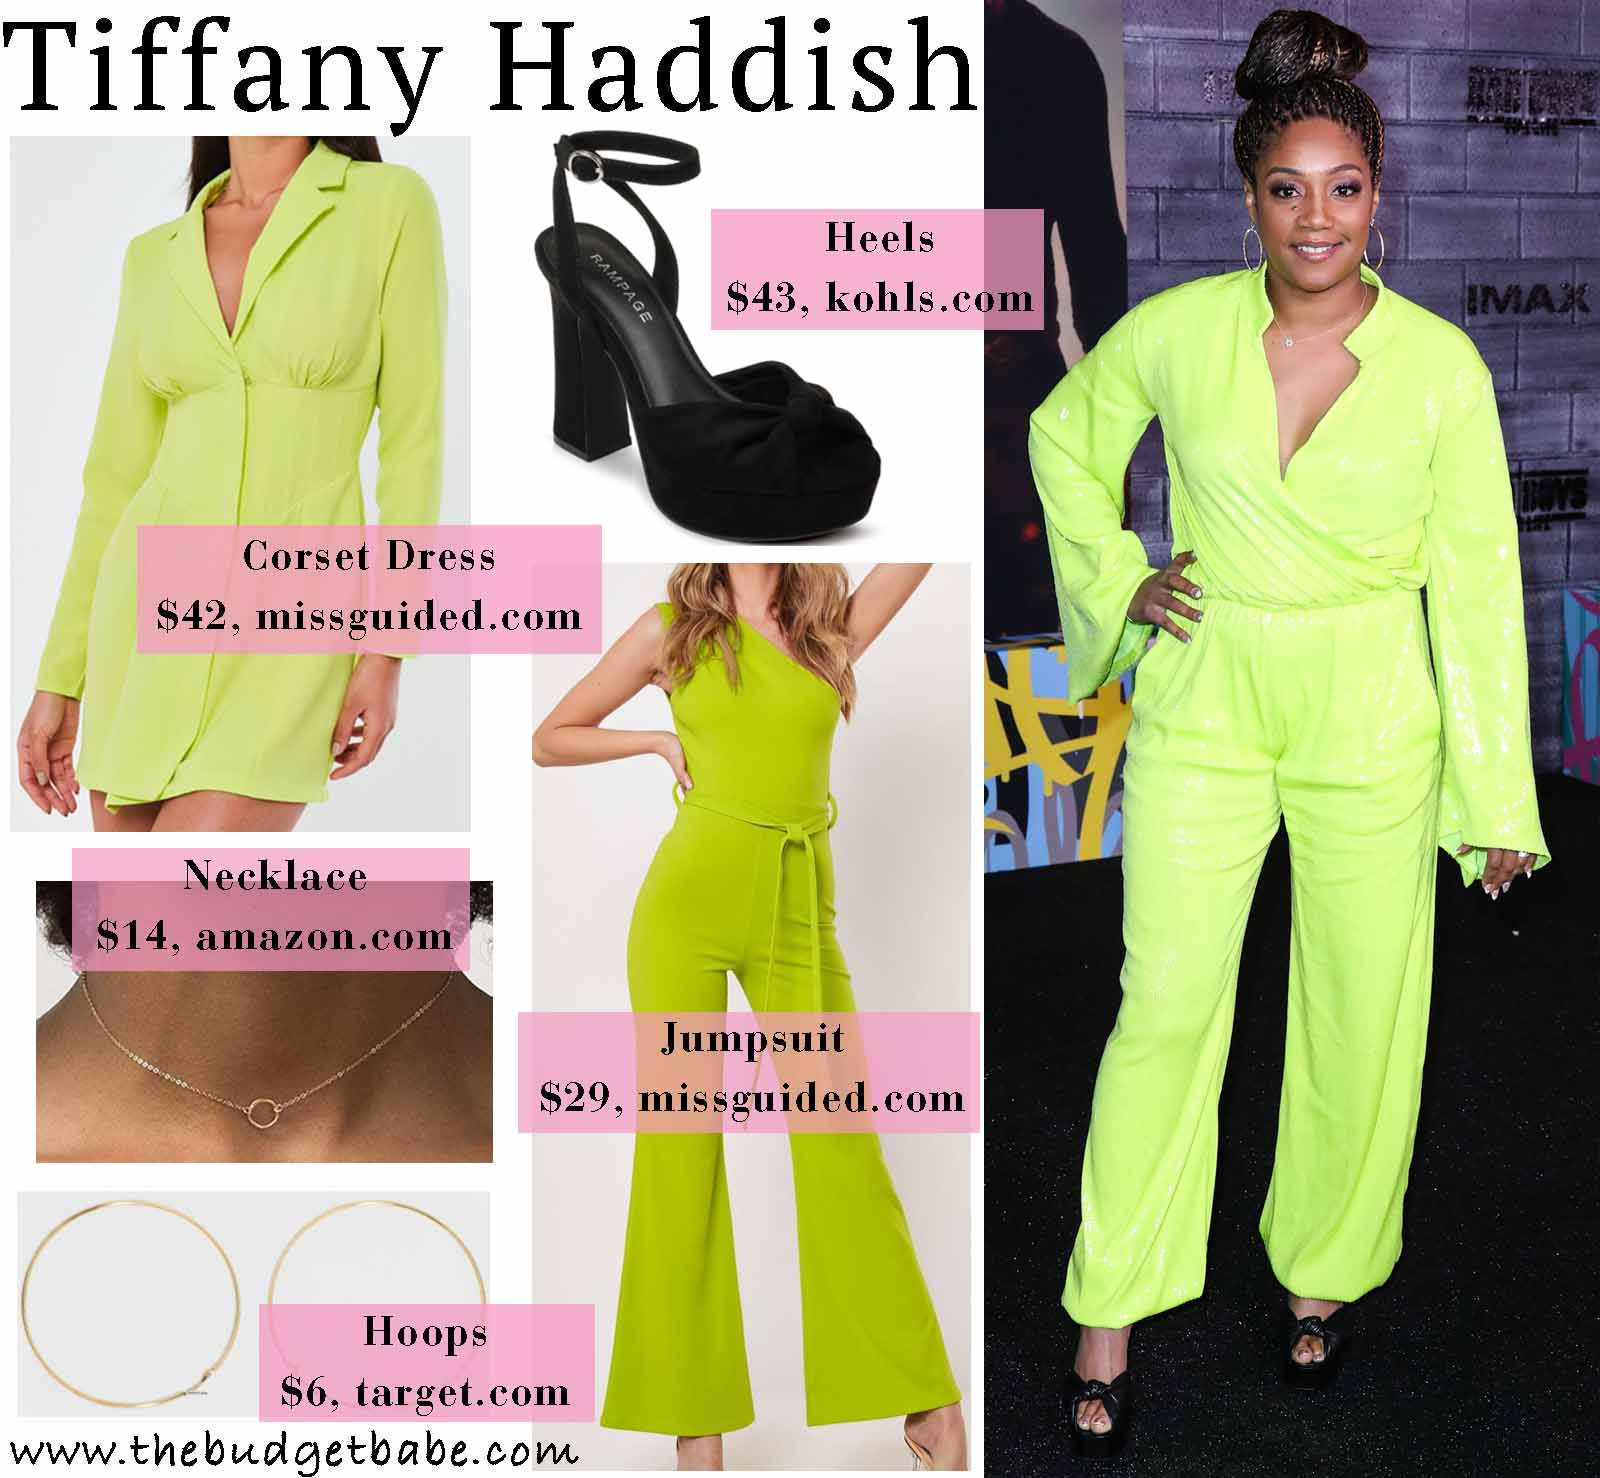 Tiffany Haddish glows in a neon jumpsuit!